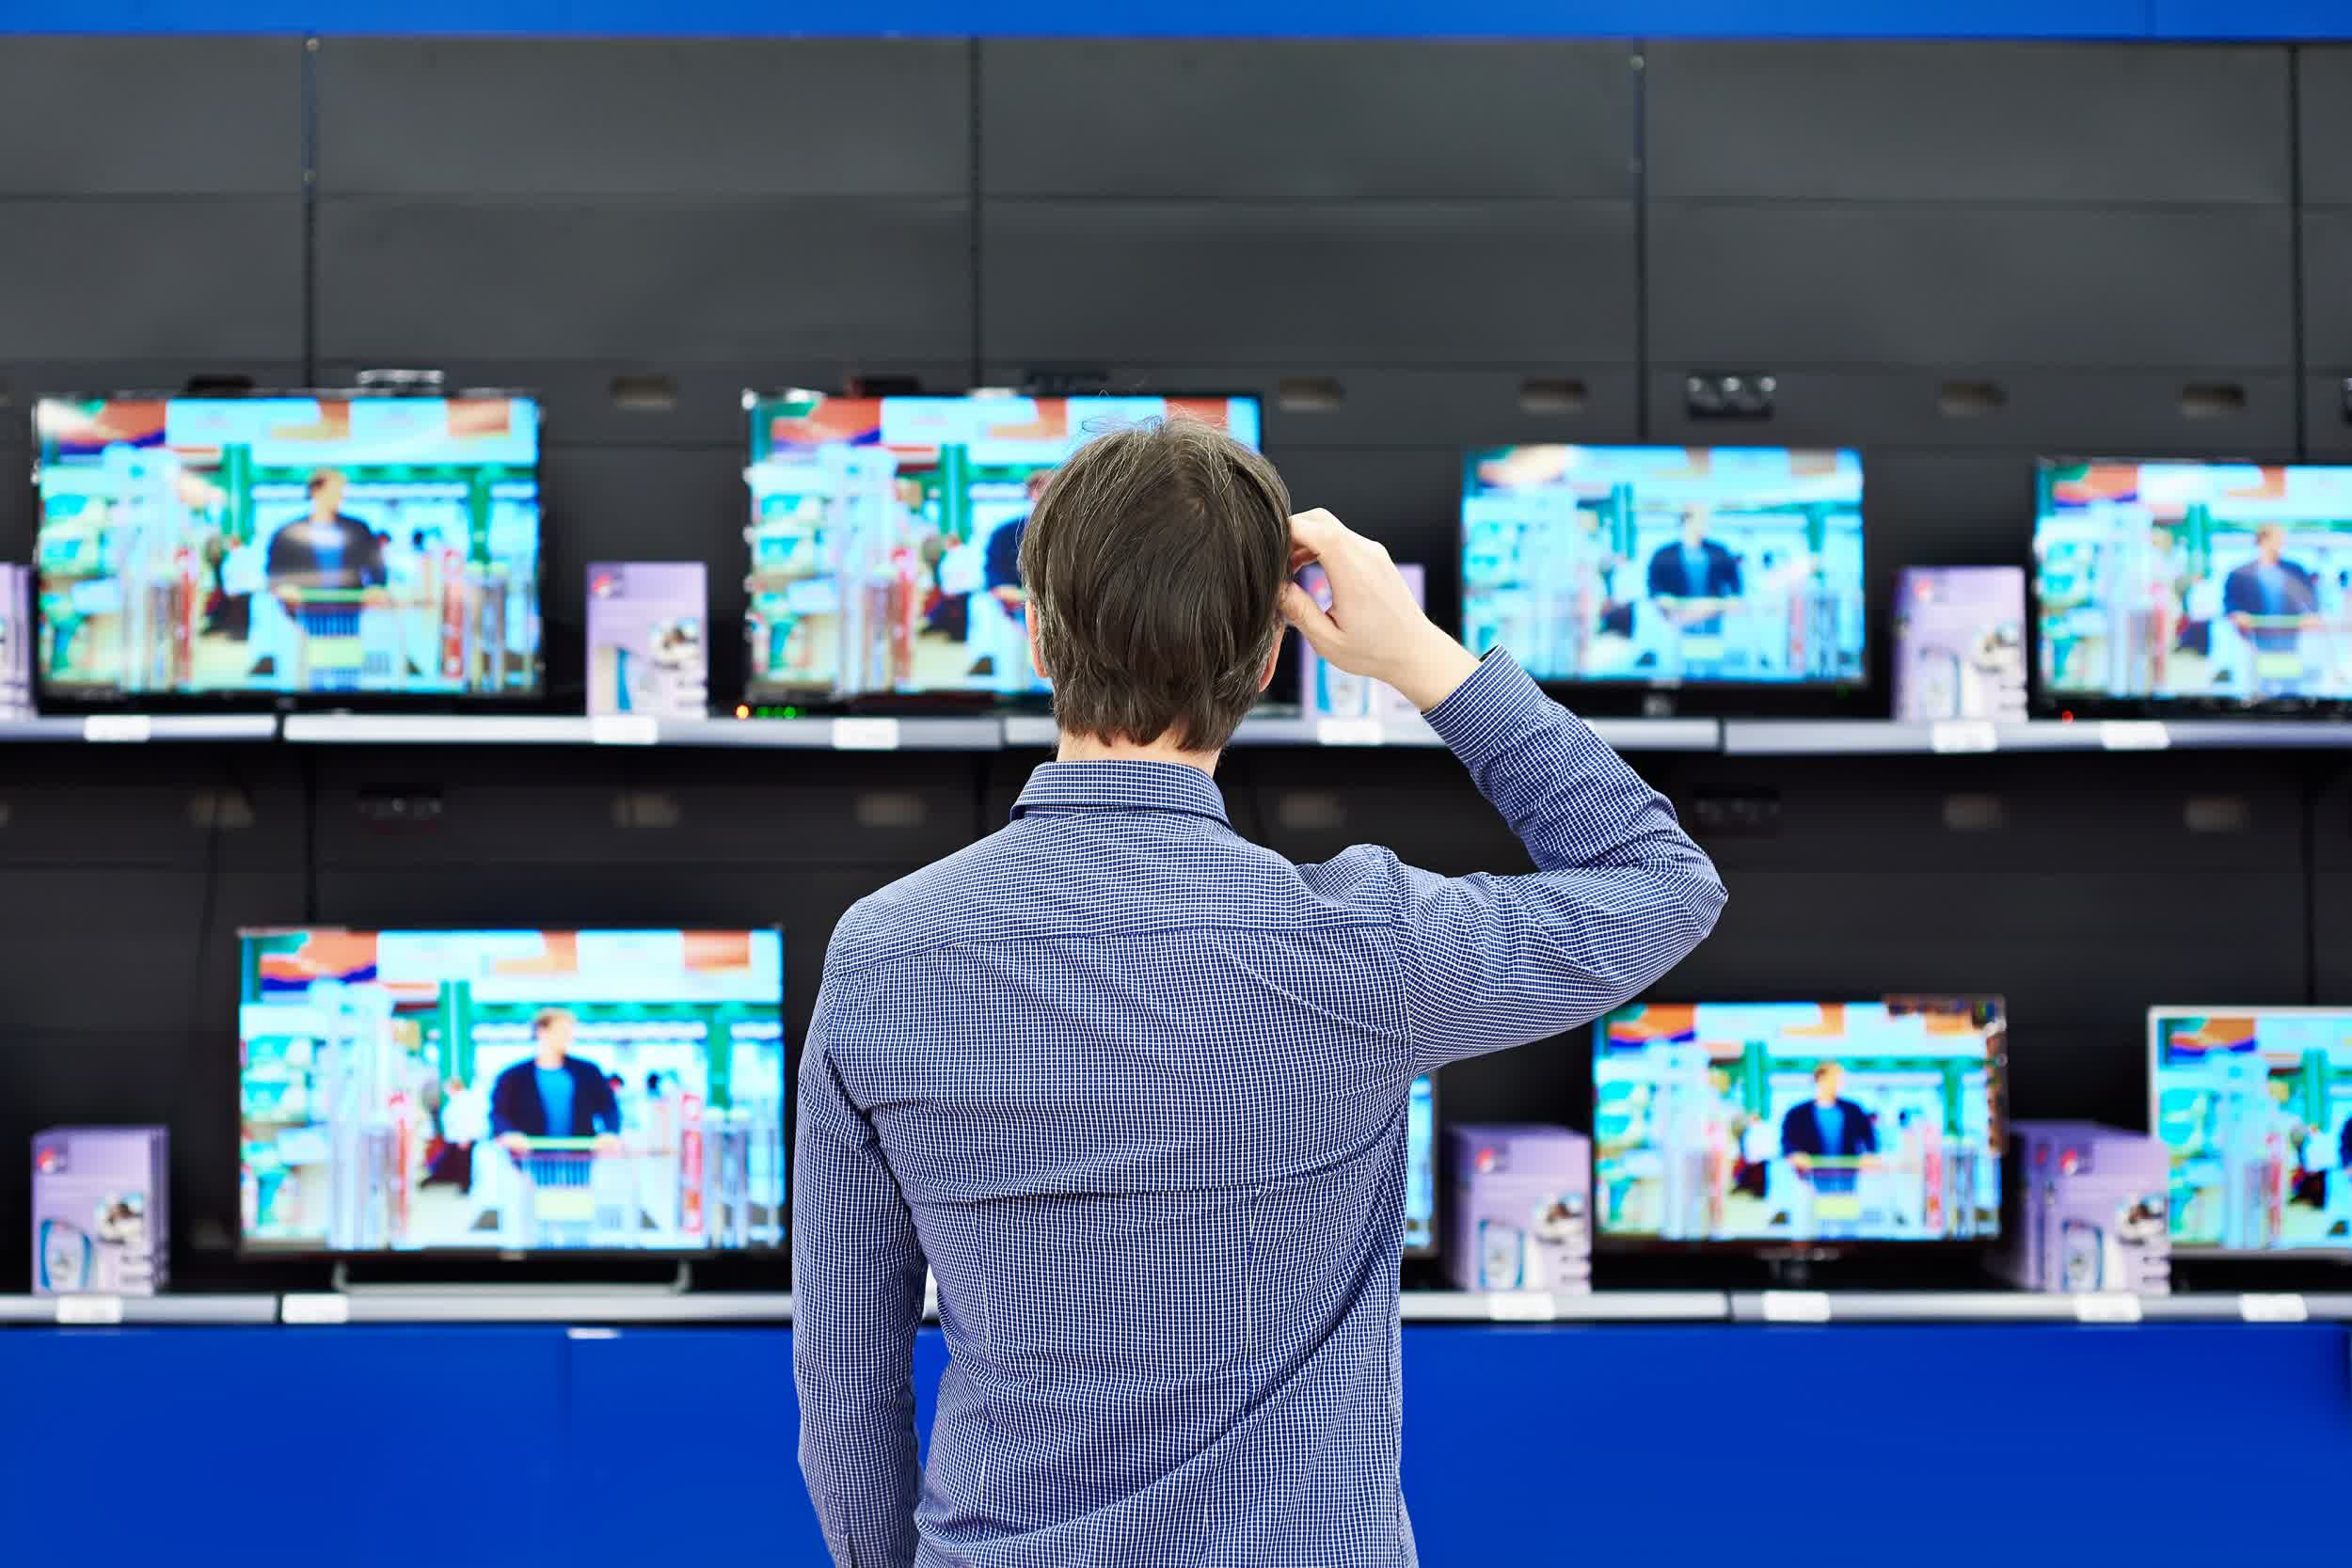 Comcast is talking with Walmart about co-developing and distributing smart TVs